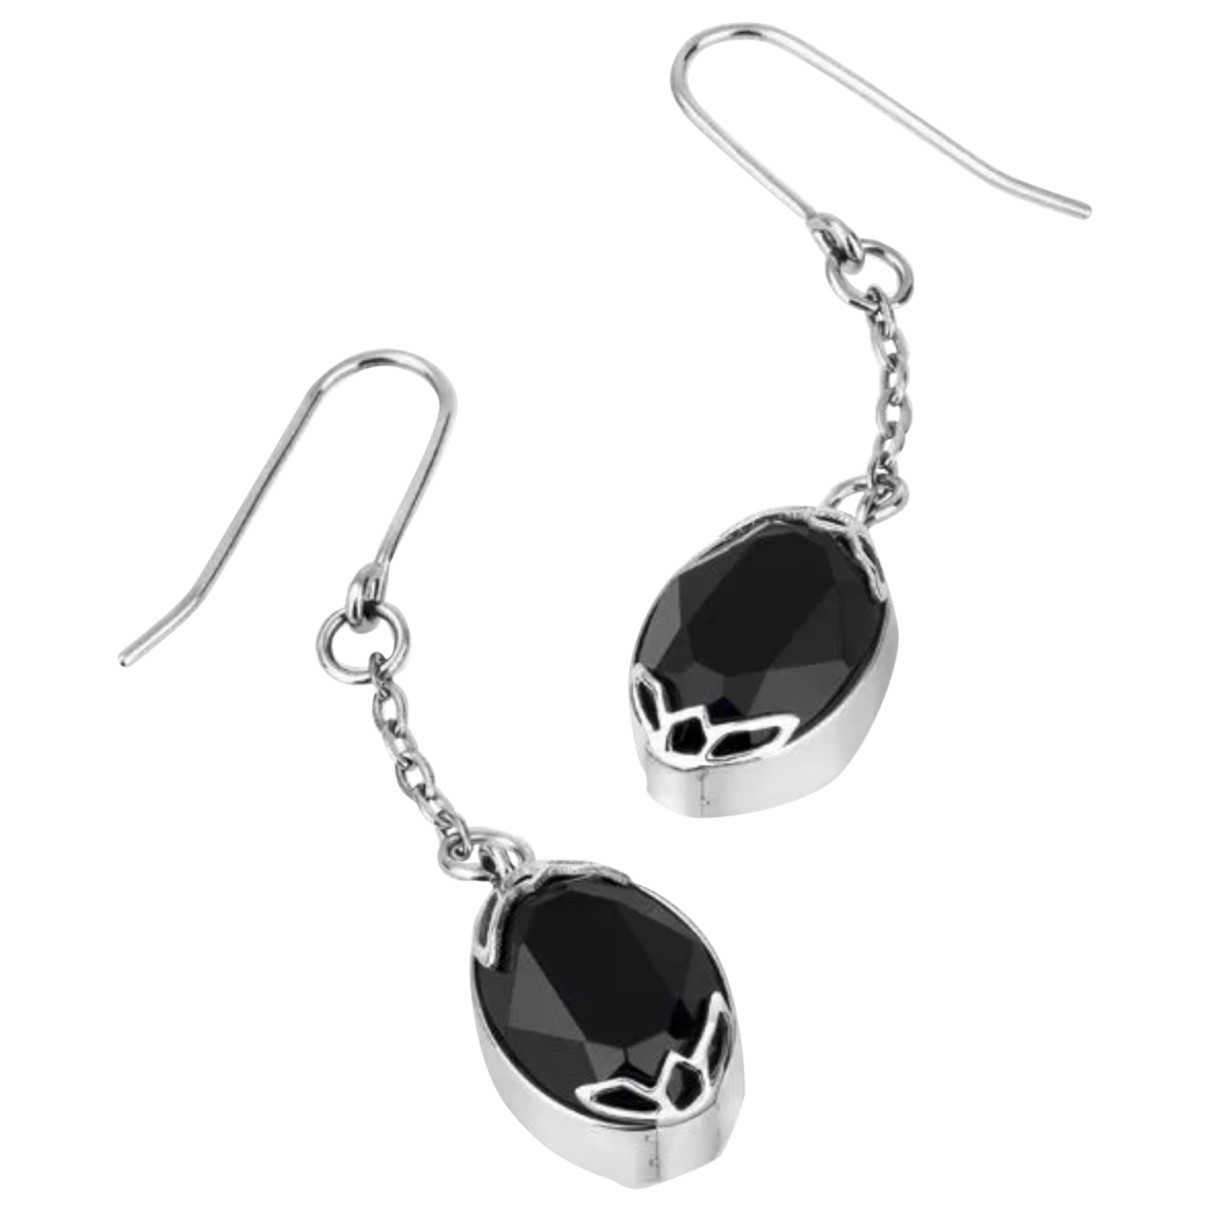 Swatch \N Black Steel Earrings for Women \N